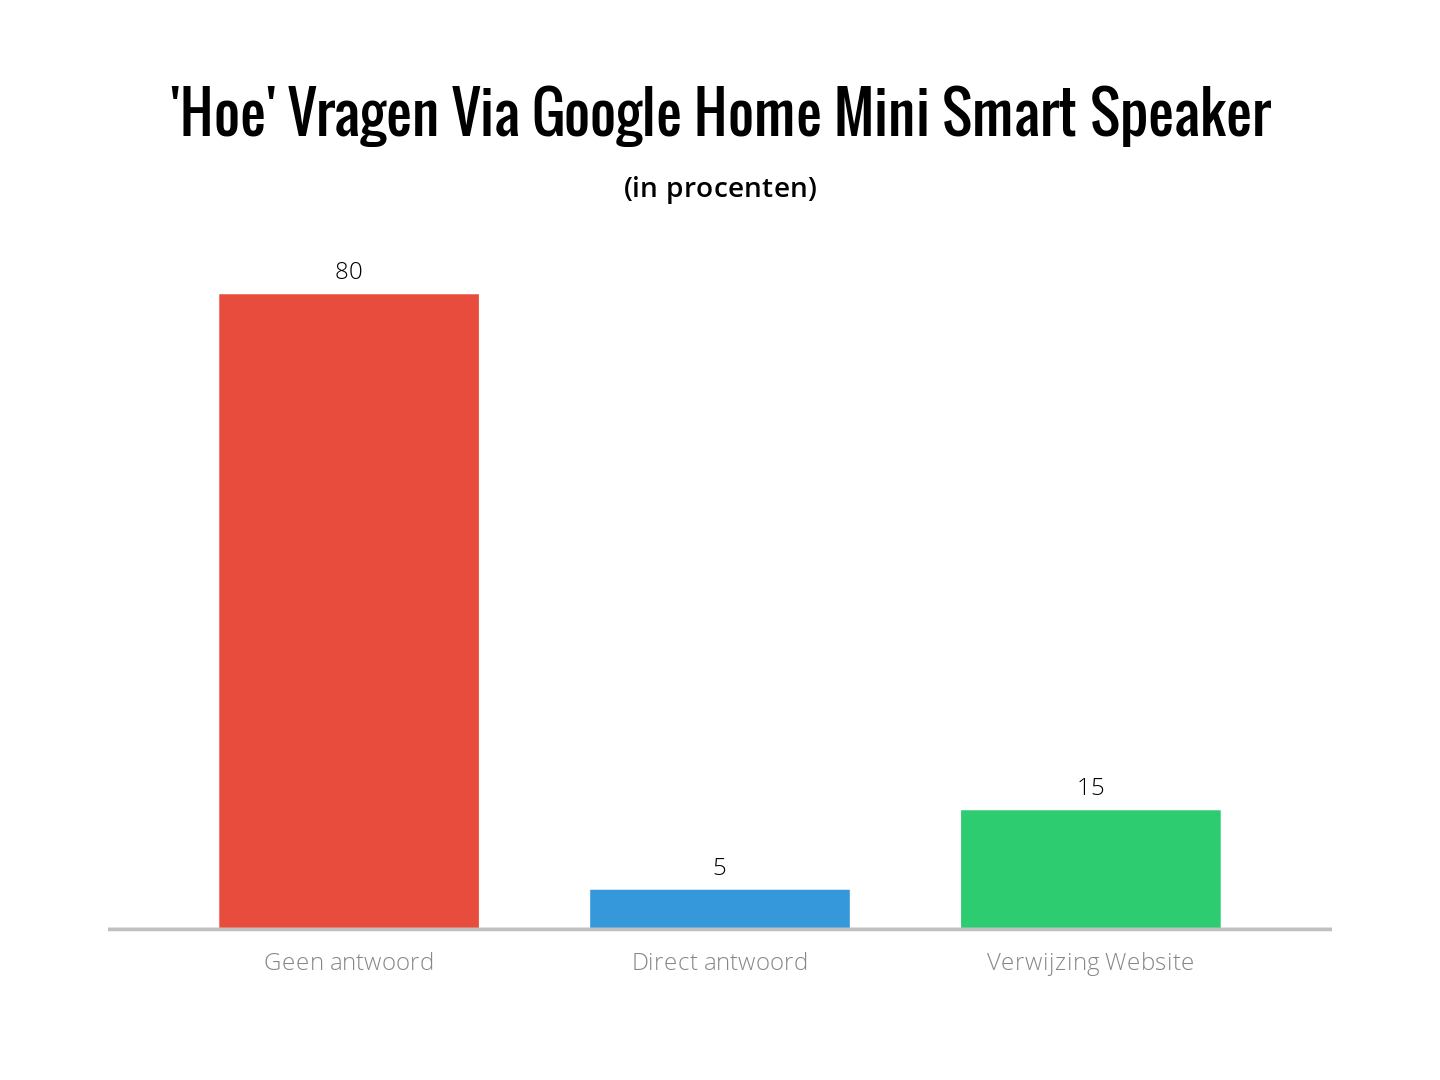 Hoe Vragen Via Google Home Mini Smart Speaker